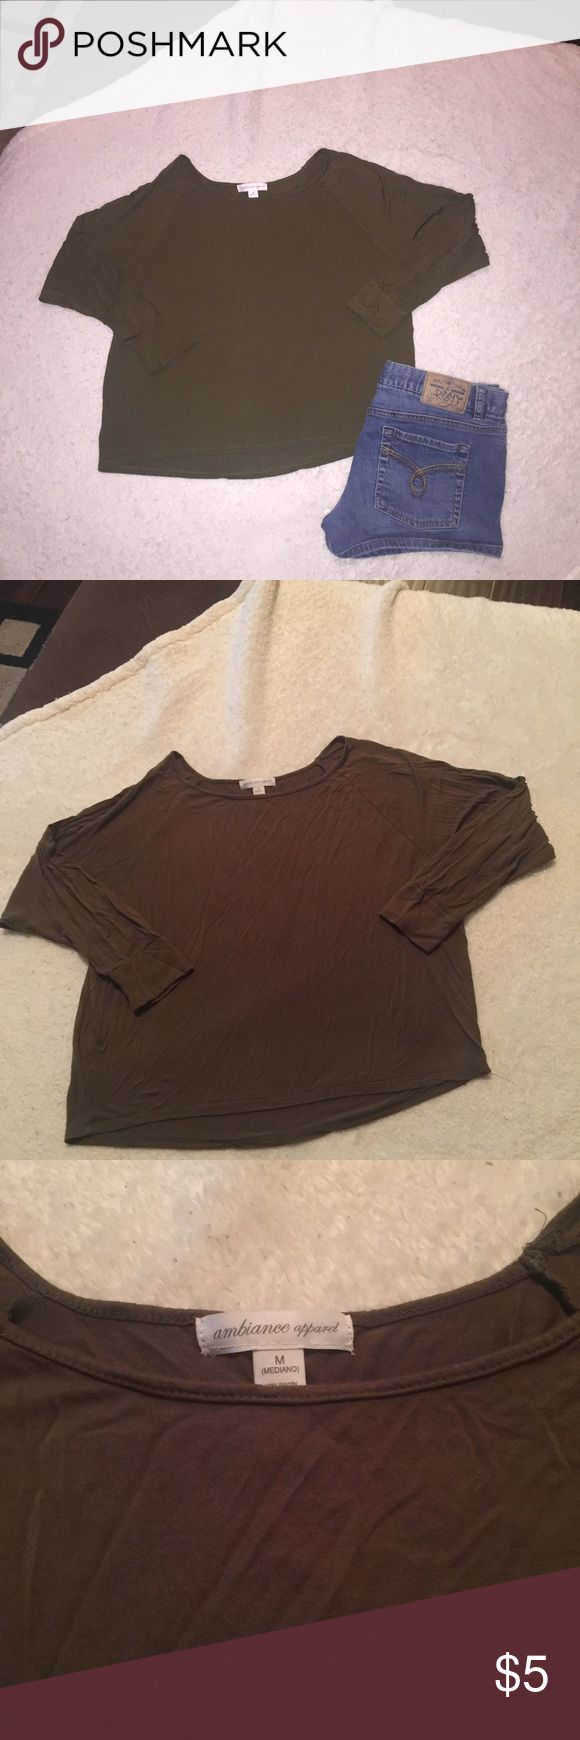 🔴4 FOR $10🔴BROWN CROP 3/4 SLEEVES TOP M VERY CUTE CROP TOP.  3/4 SLEEVES AND IN EXCELLENT CONDITION!  GREAT W/ LAYERING.  💖THANK YOU FOR THE LIKE.  IM HAVING A SALE!  EVERYTHING $10 AND UNDER IS 4 FOR $10.  EVERYTHING $20 AND UNDER IS 3 FOR $20.  PLEASE FEEL FREE TO ASK QUESTIONS!💖 Ambiance Apparel Tops Crop Tops